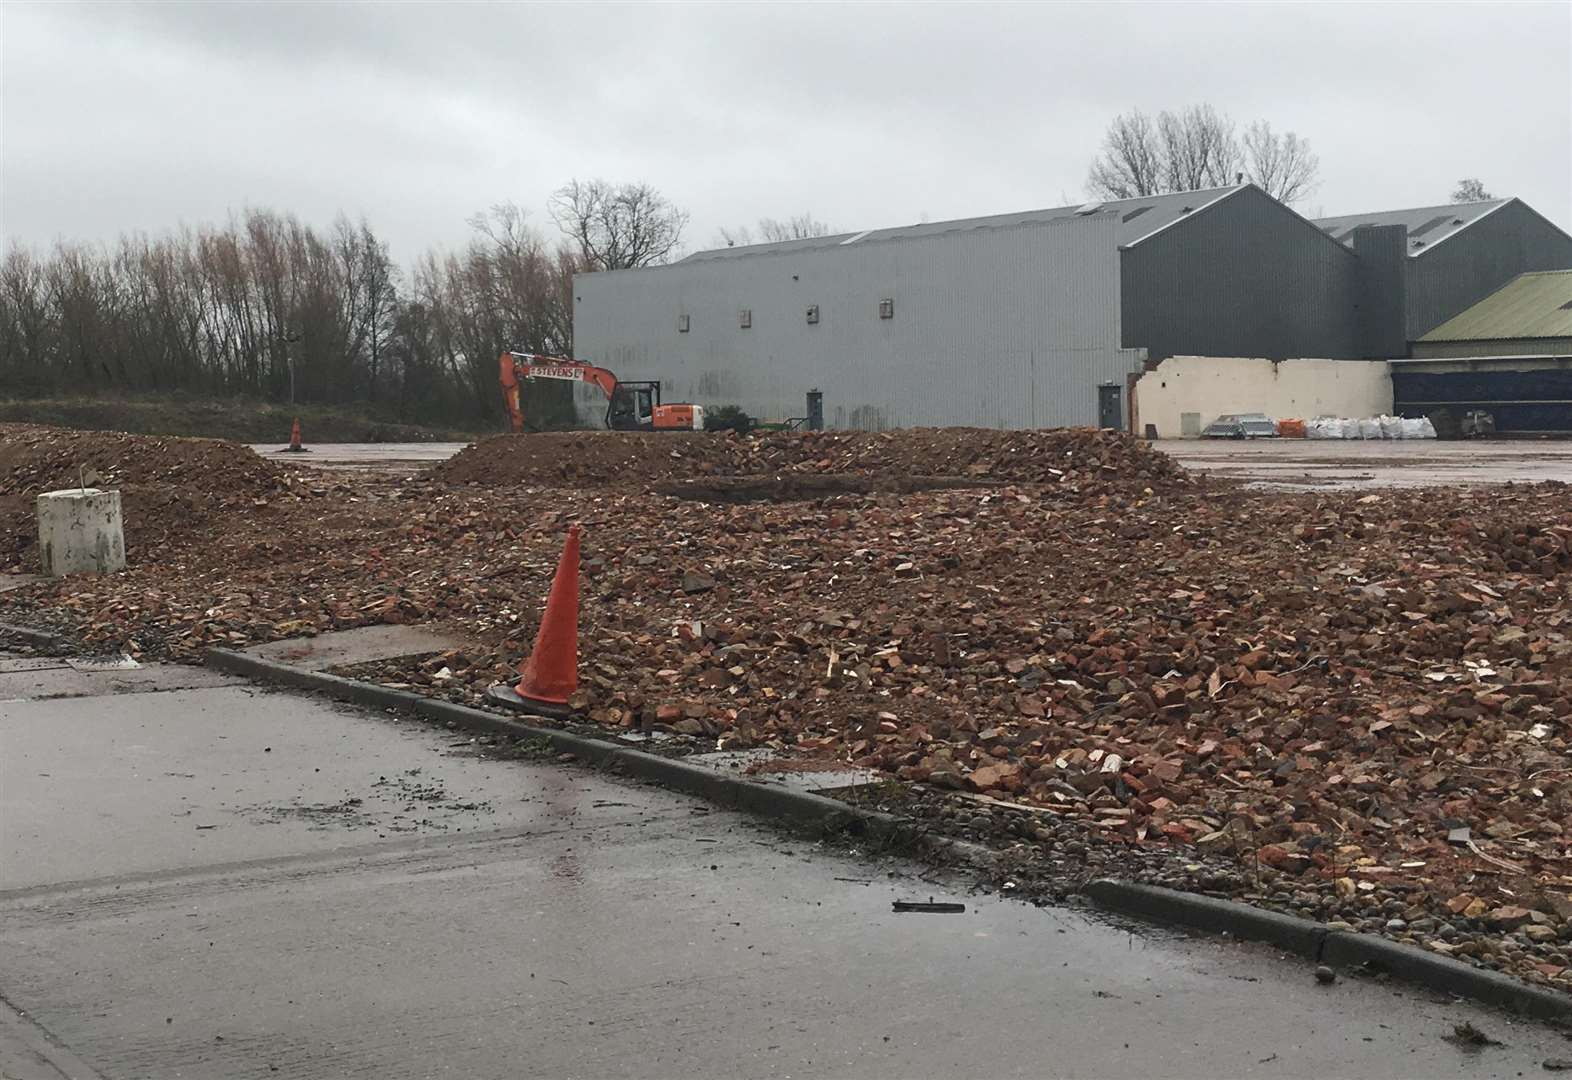 Historic print firm reduced to rubble